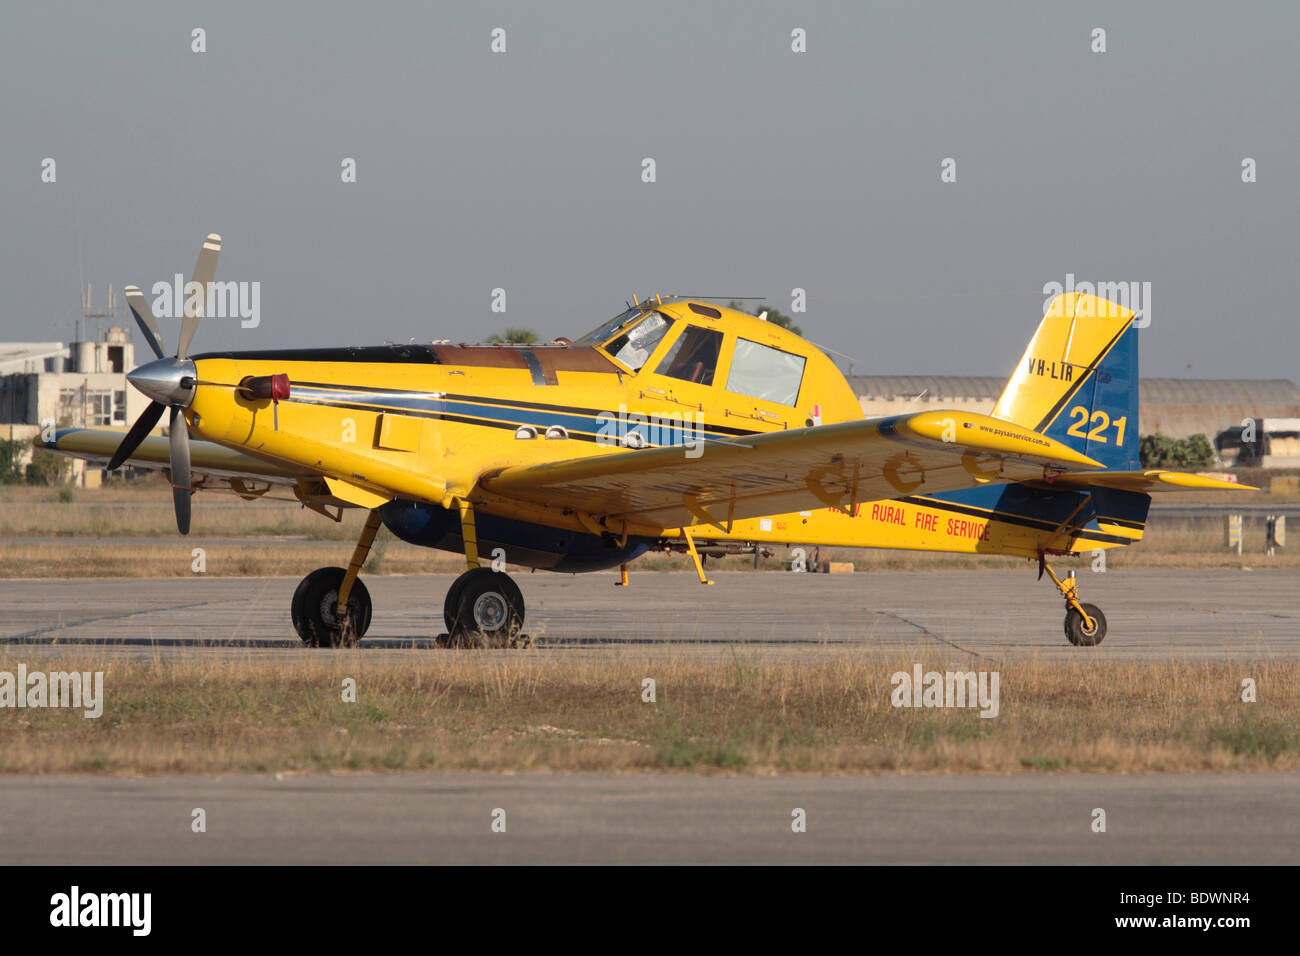 Air Tractor AT-802 firefighting aircraft - Stock Image